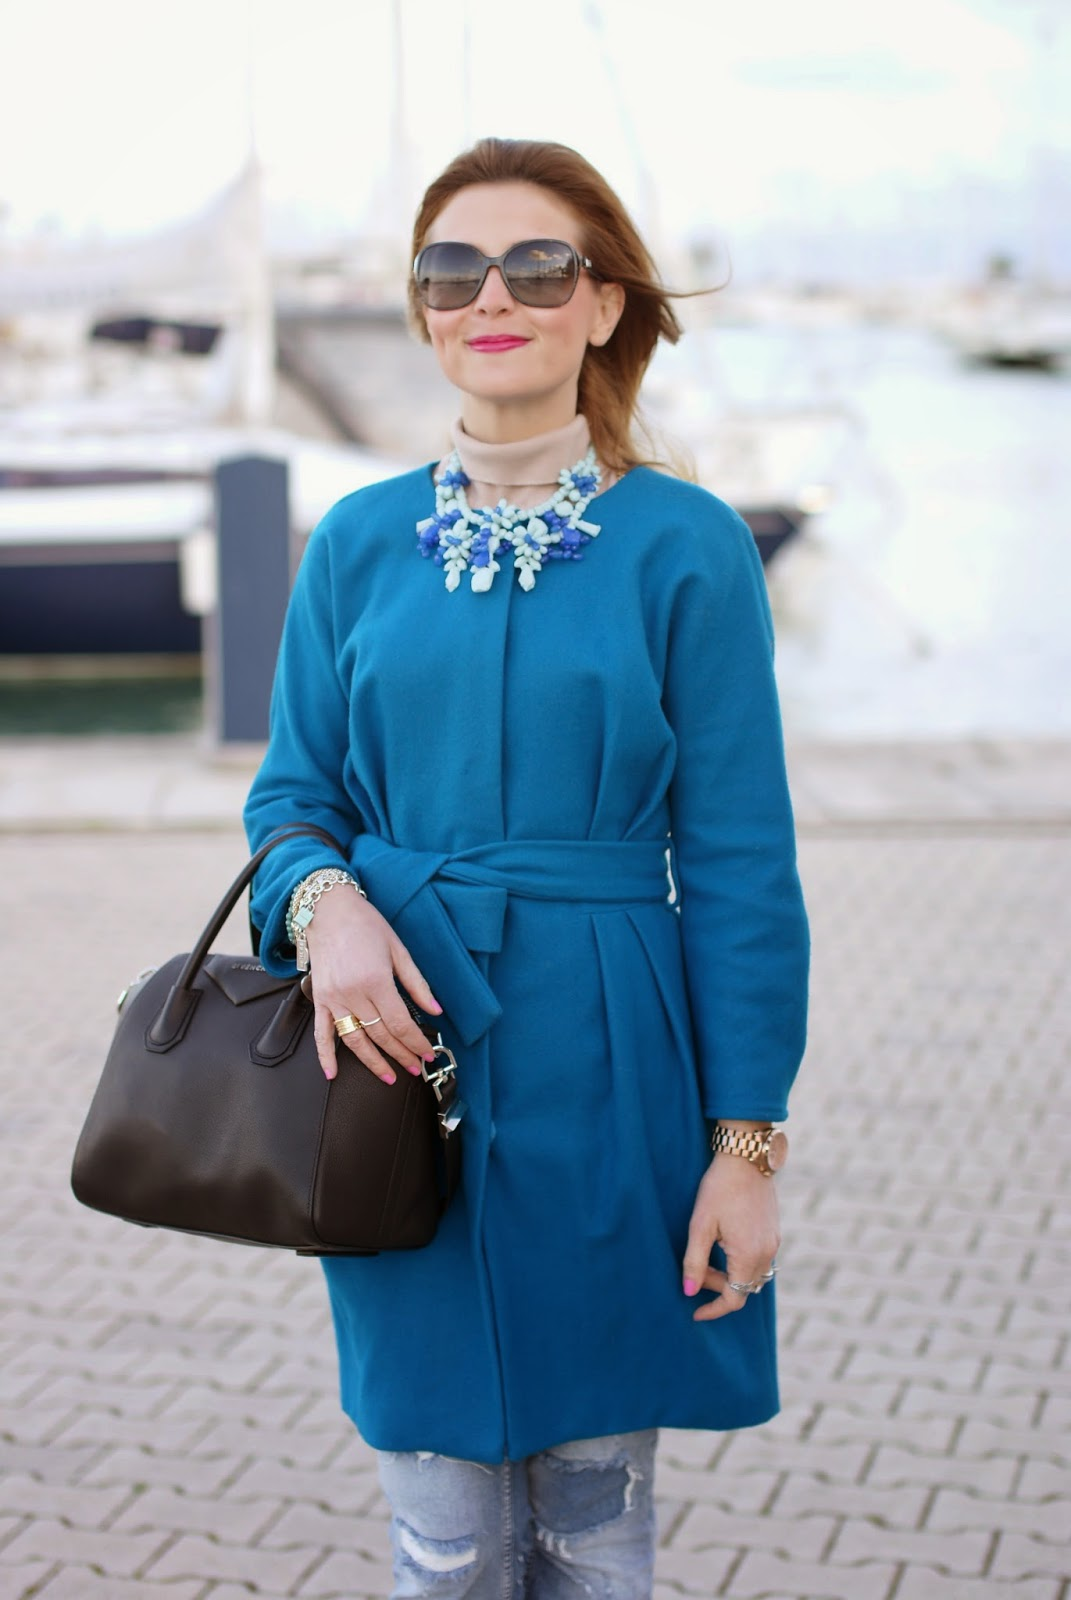 Givenchy Antigona bag, leopard pumps, Zara blue statement necklace, Sapphire blue coat, Fashion and Cookies, fashion blogger